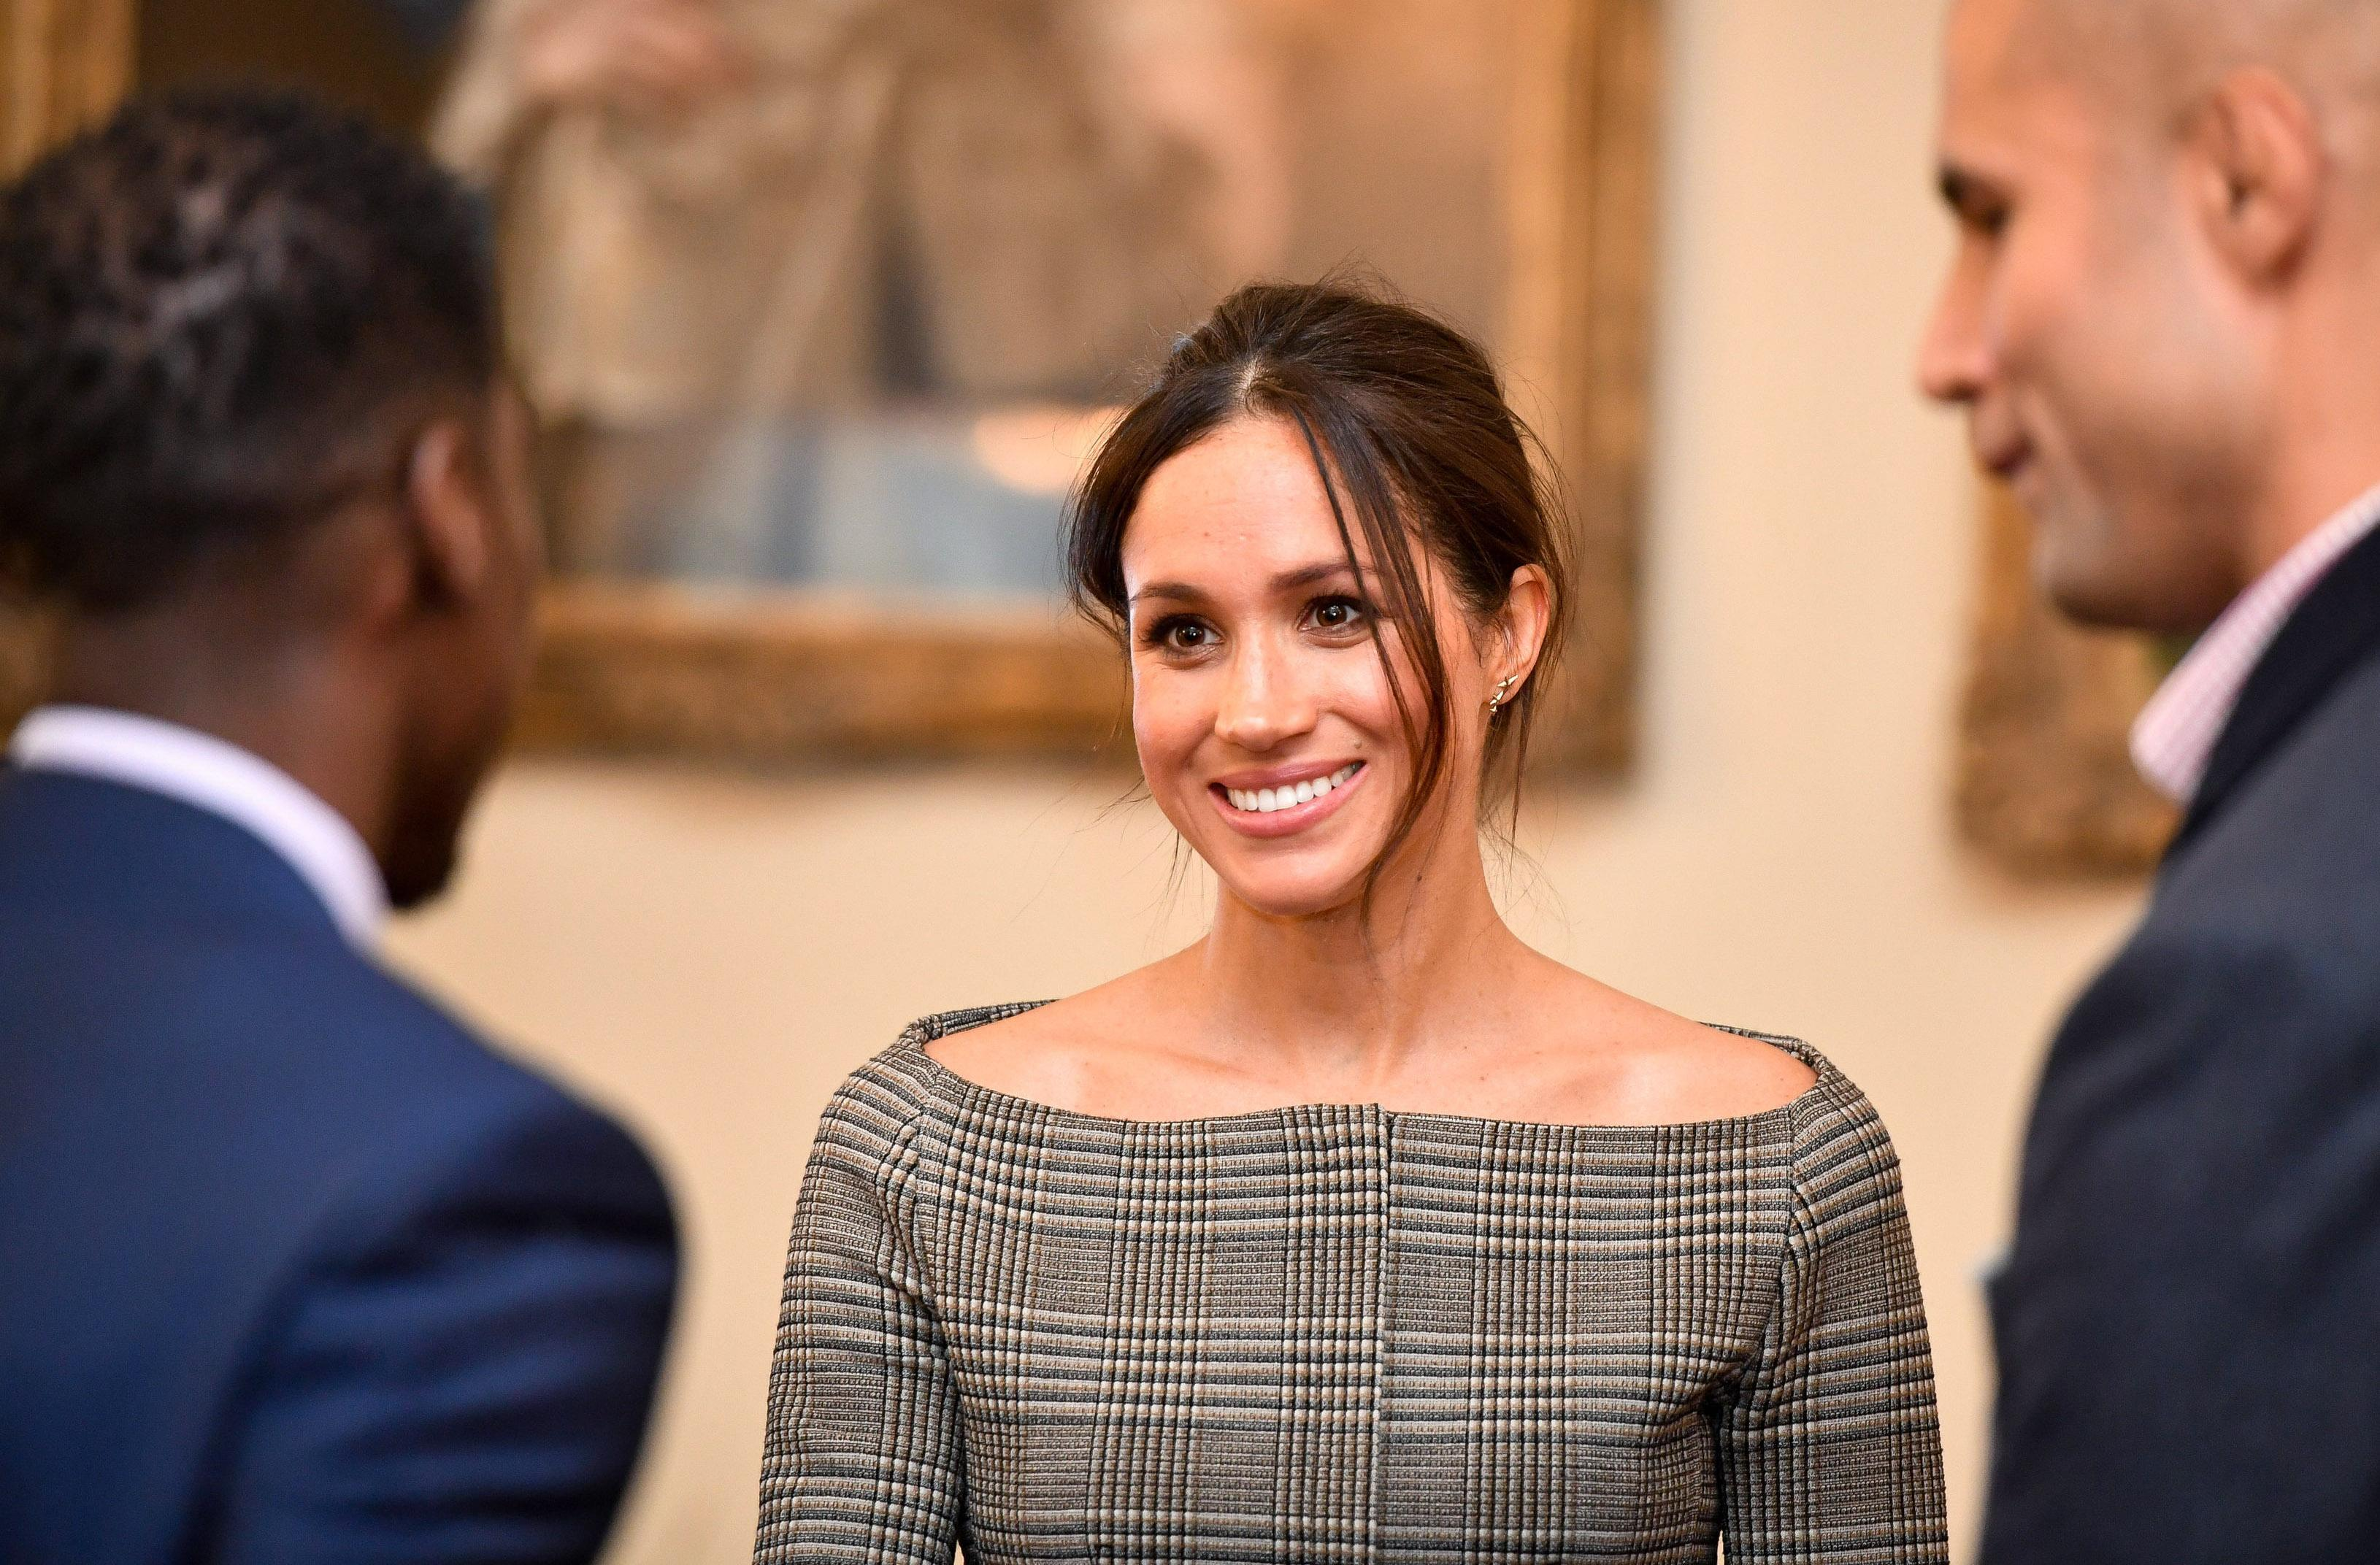 Meghan Markle Wears Chic Pantsuit For First Evening Engagement With Prince Harry